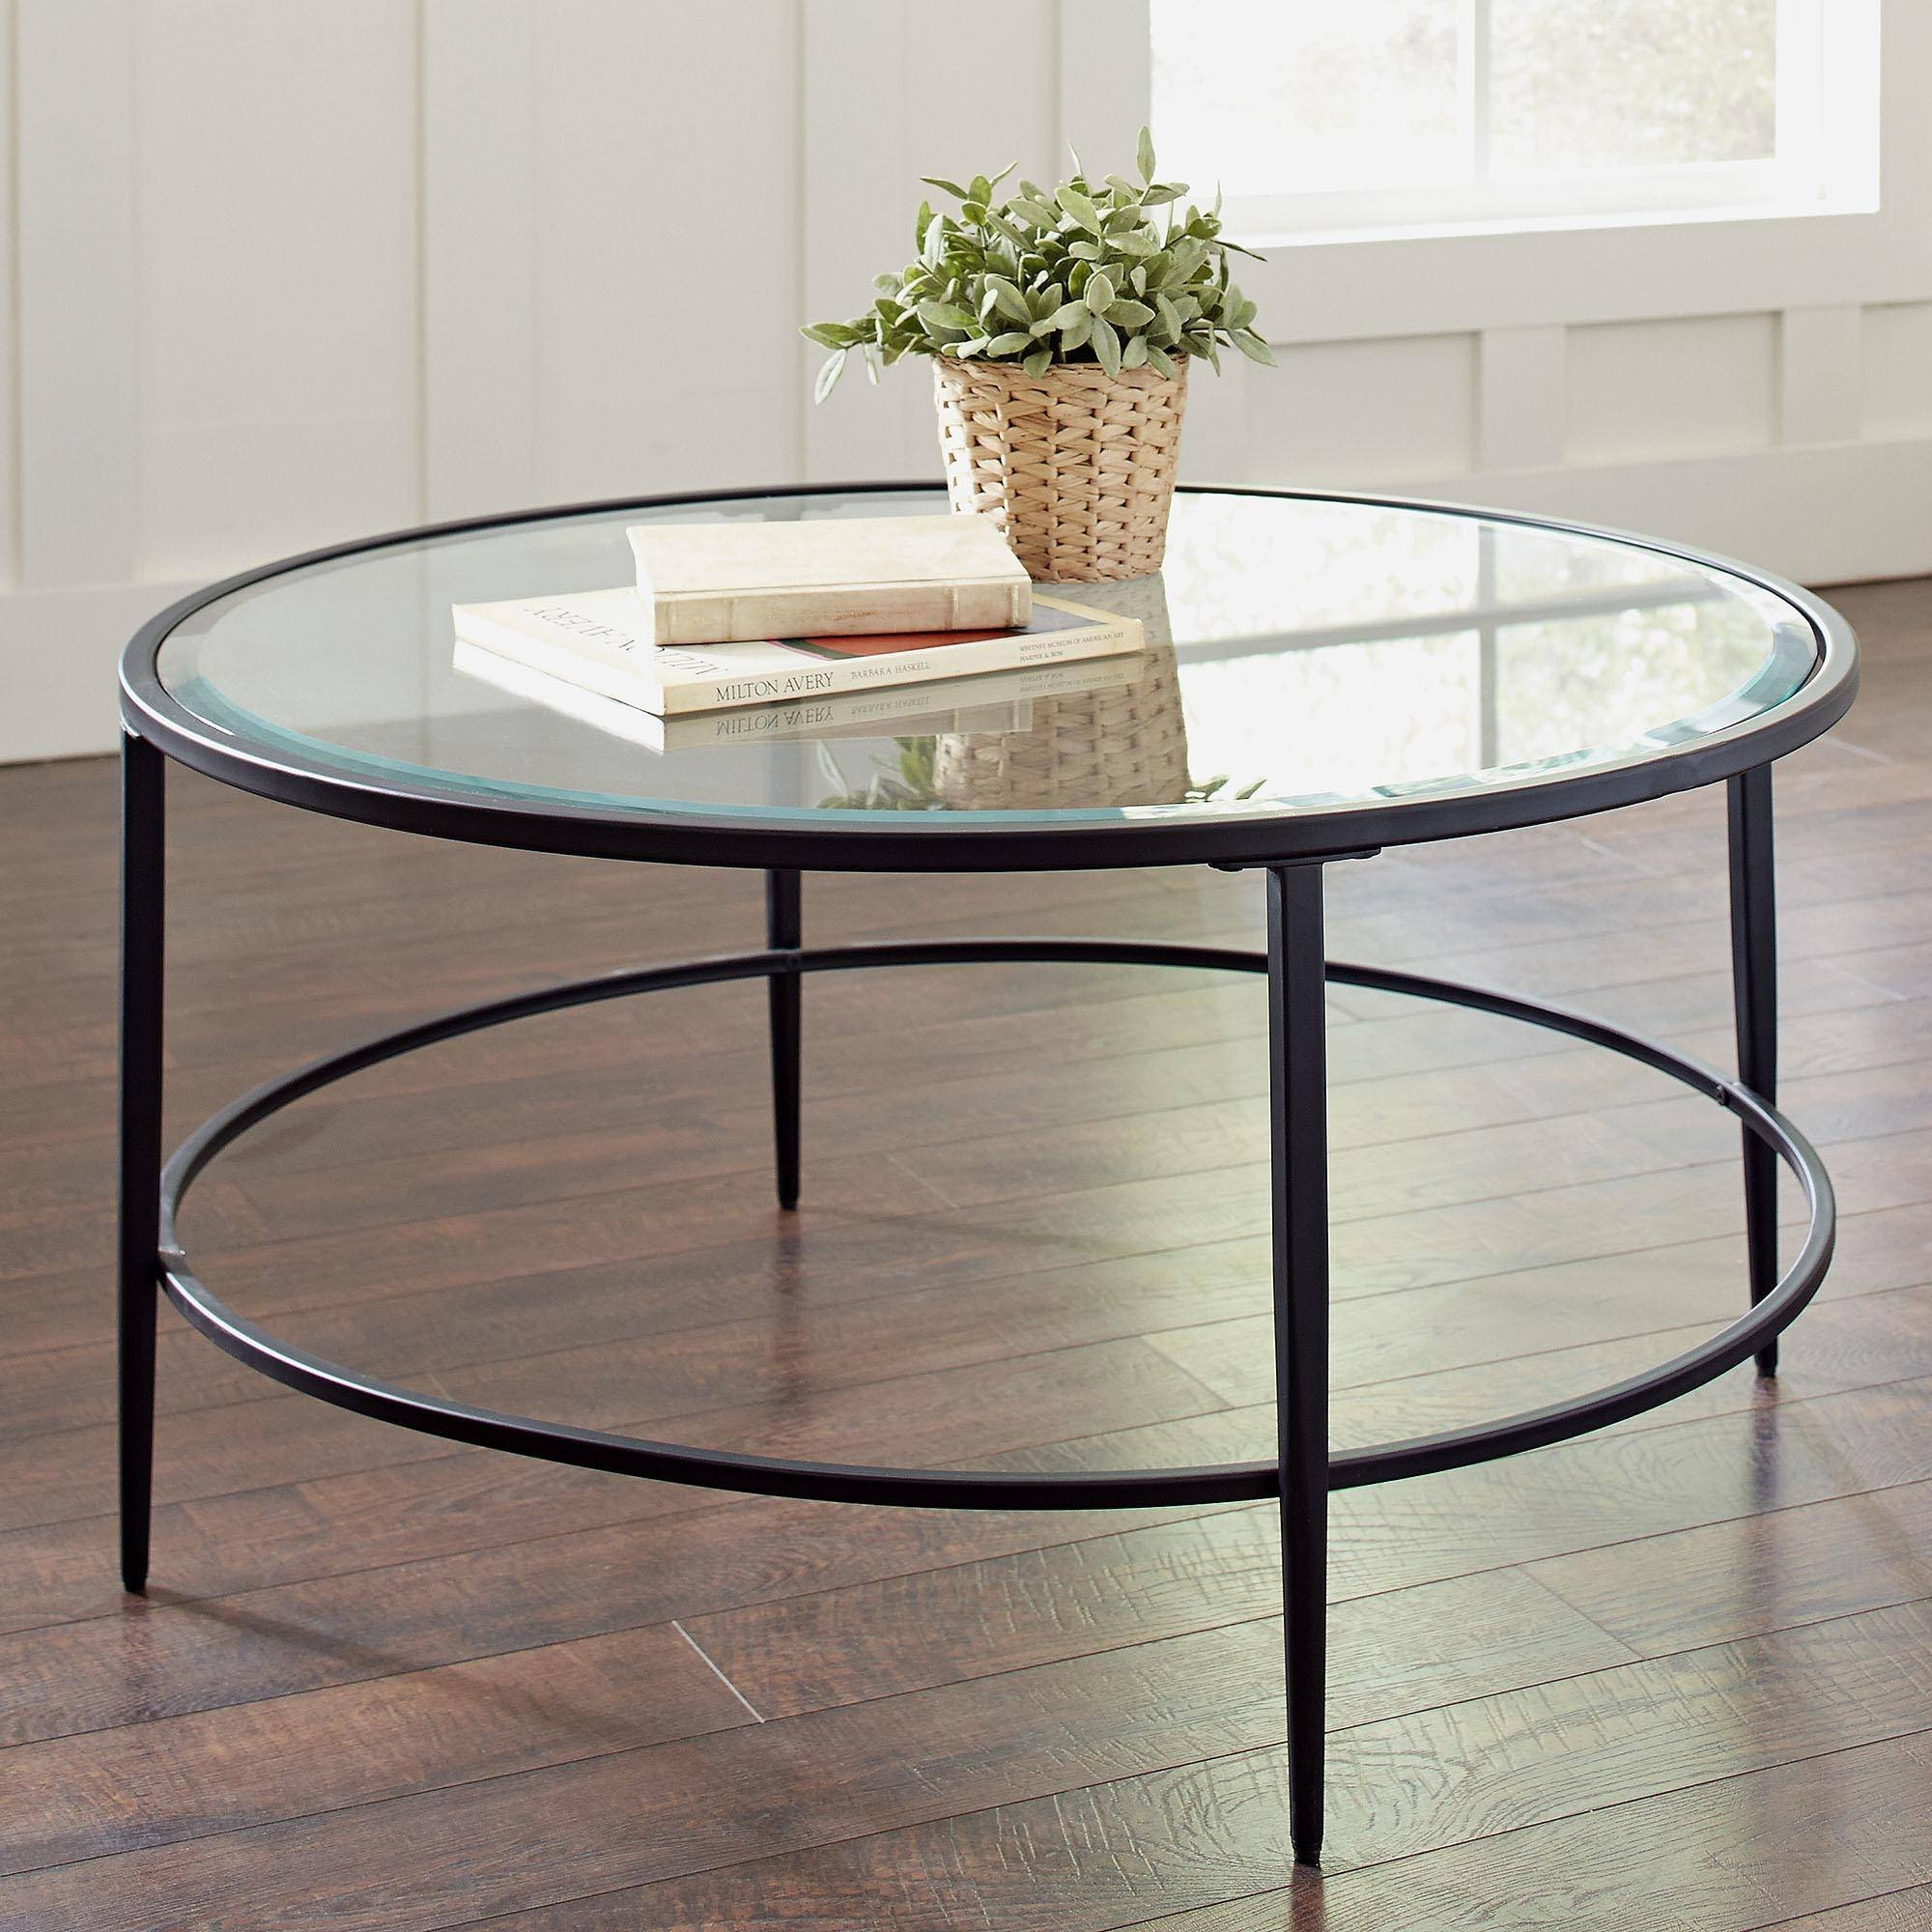 Coffee Table: Enchanting Round Glass Coffee Tables For Sale Round with Round Glass Coffee Tables (Image 9 of 30)